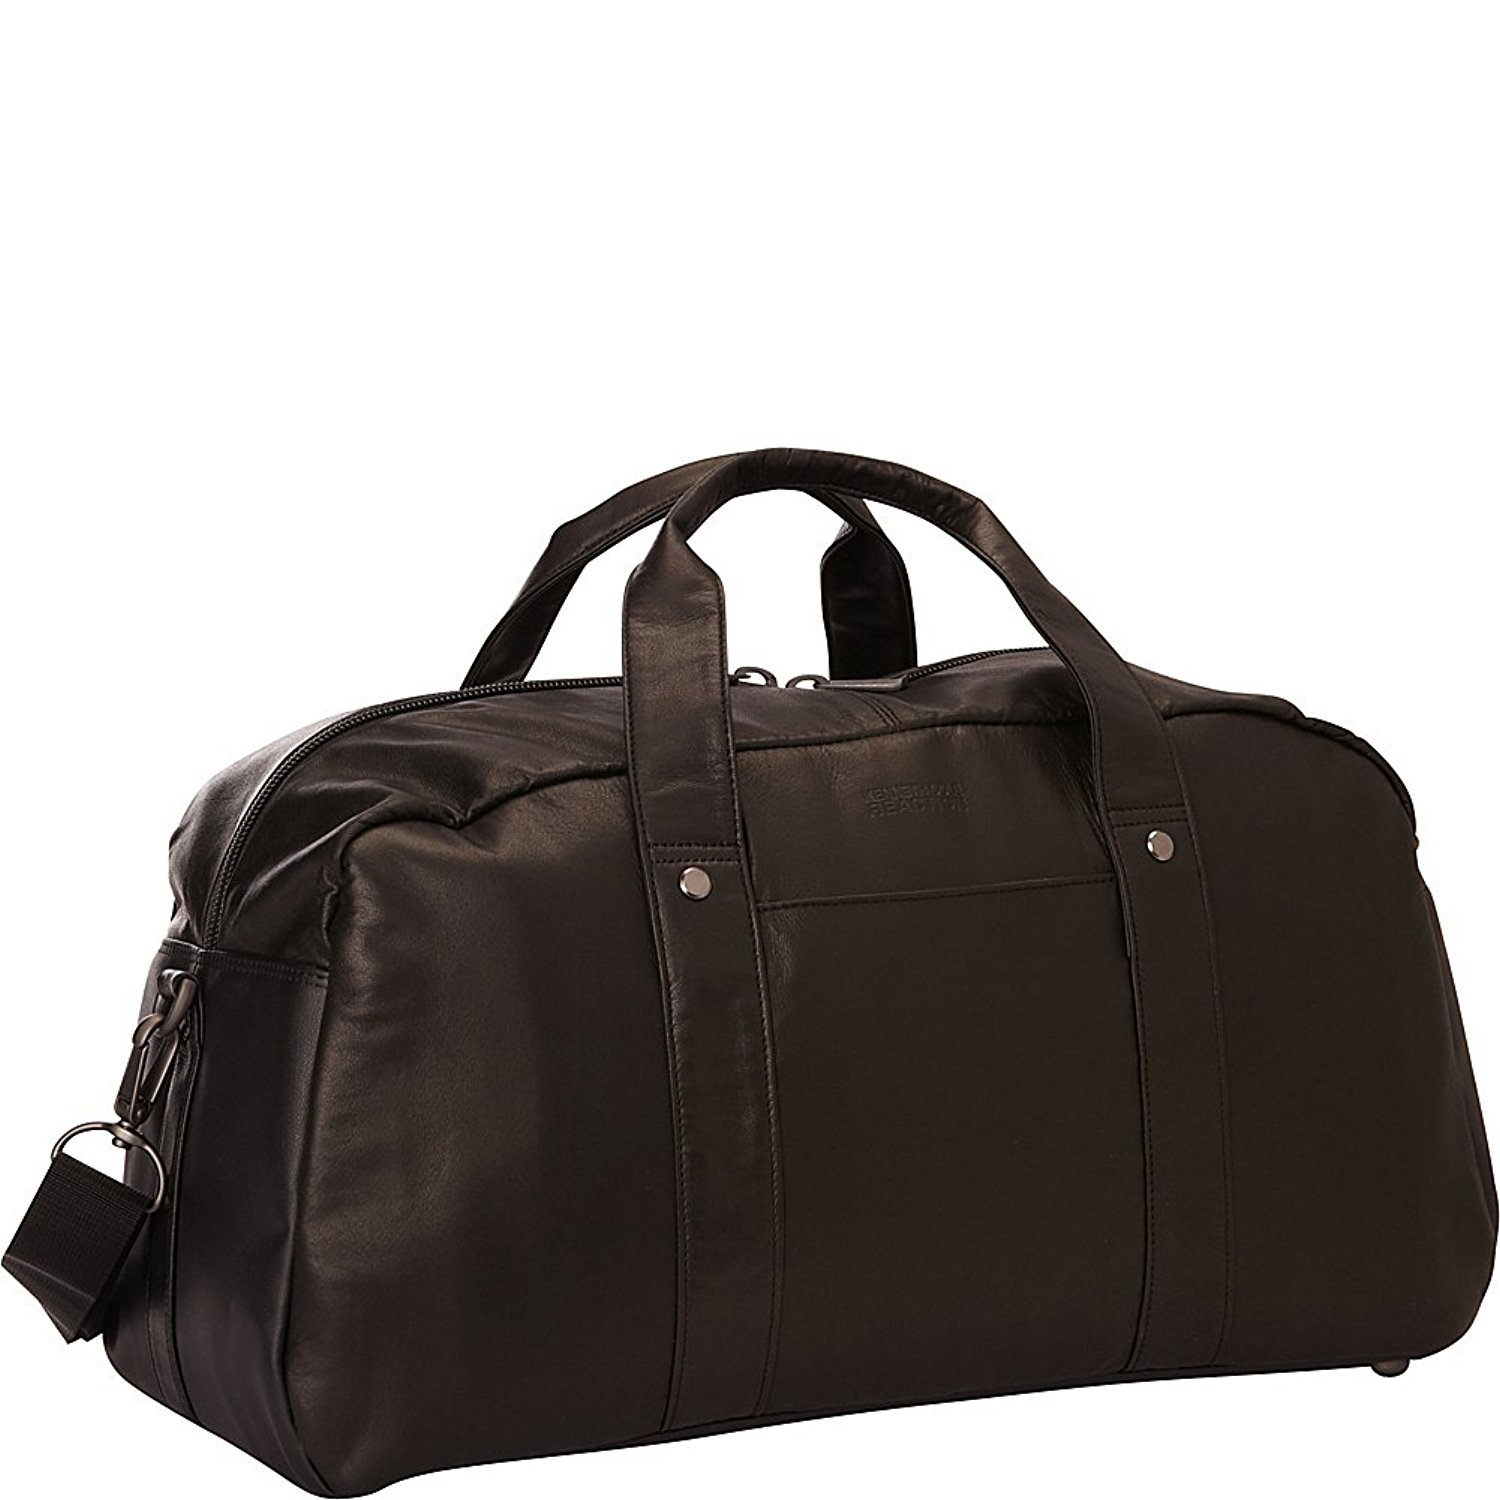 Kenneth Cole Genuine Leather Duffle Bag Travel Overnight ...